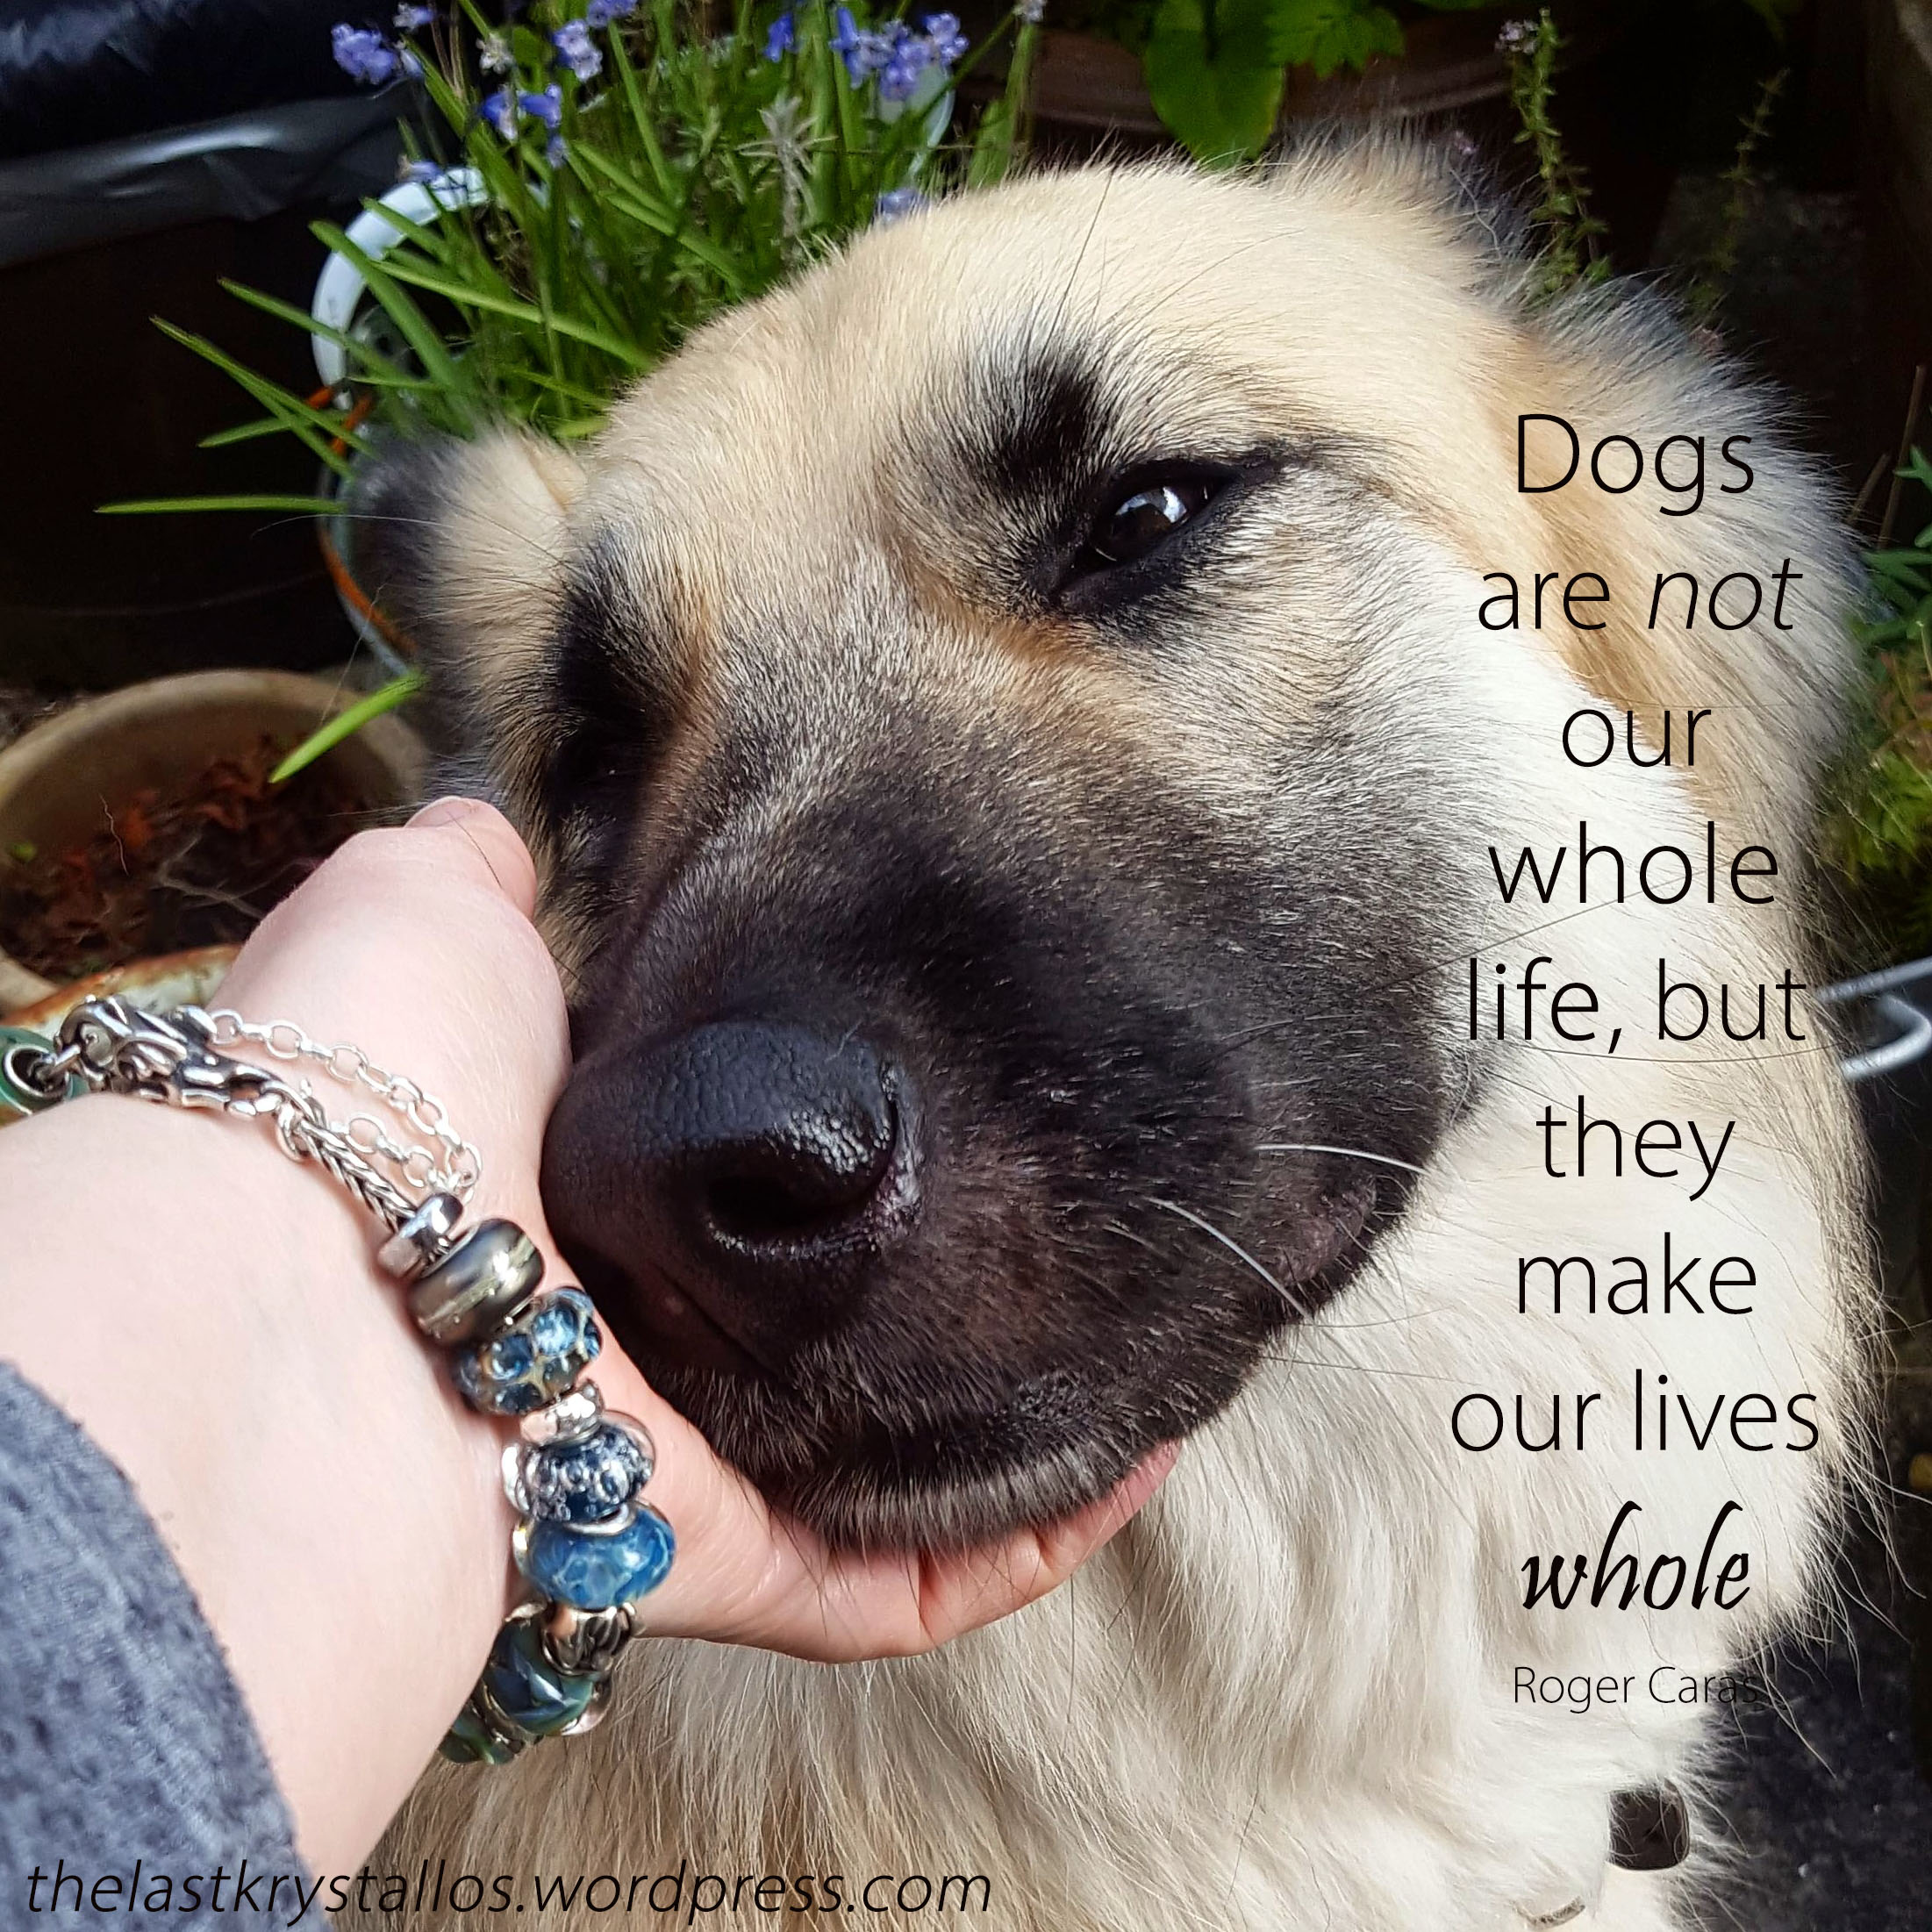 Dogs are not our whole life, but they make our lives whole - Roger Caras - The Last Krystallos